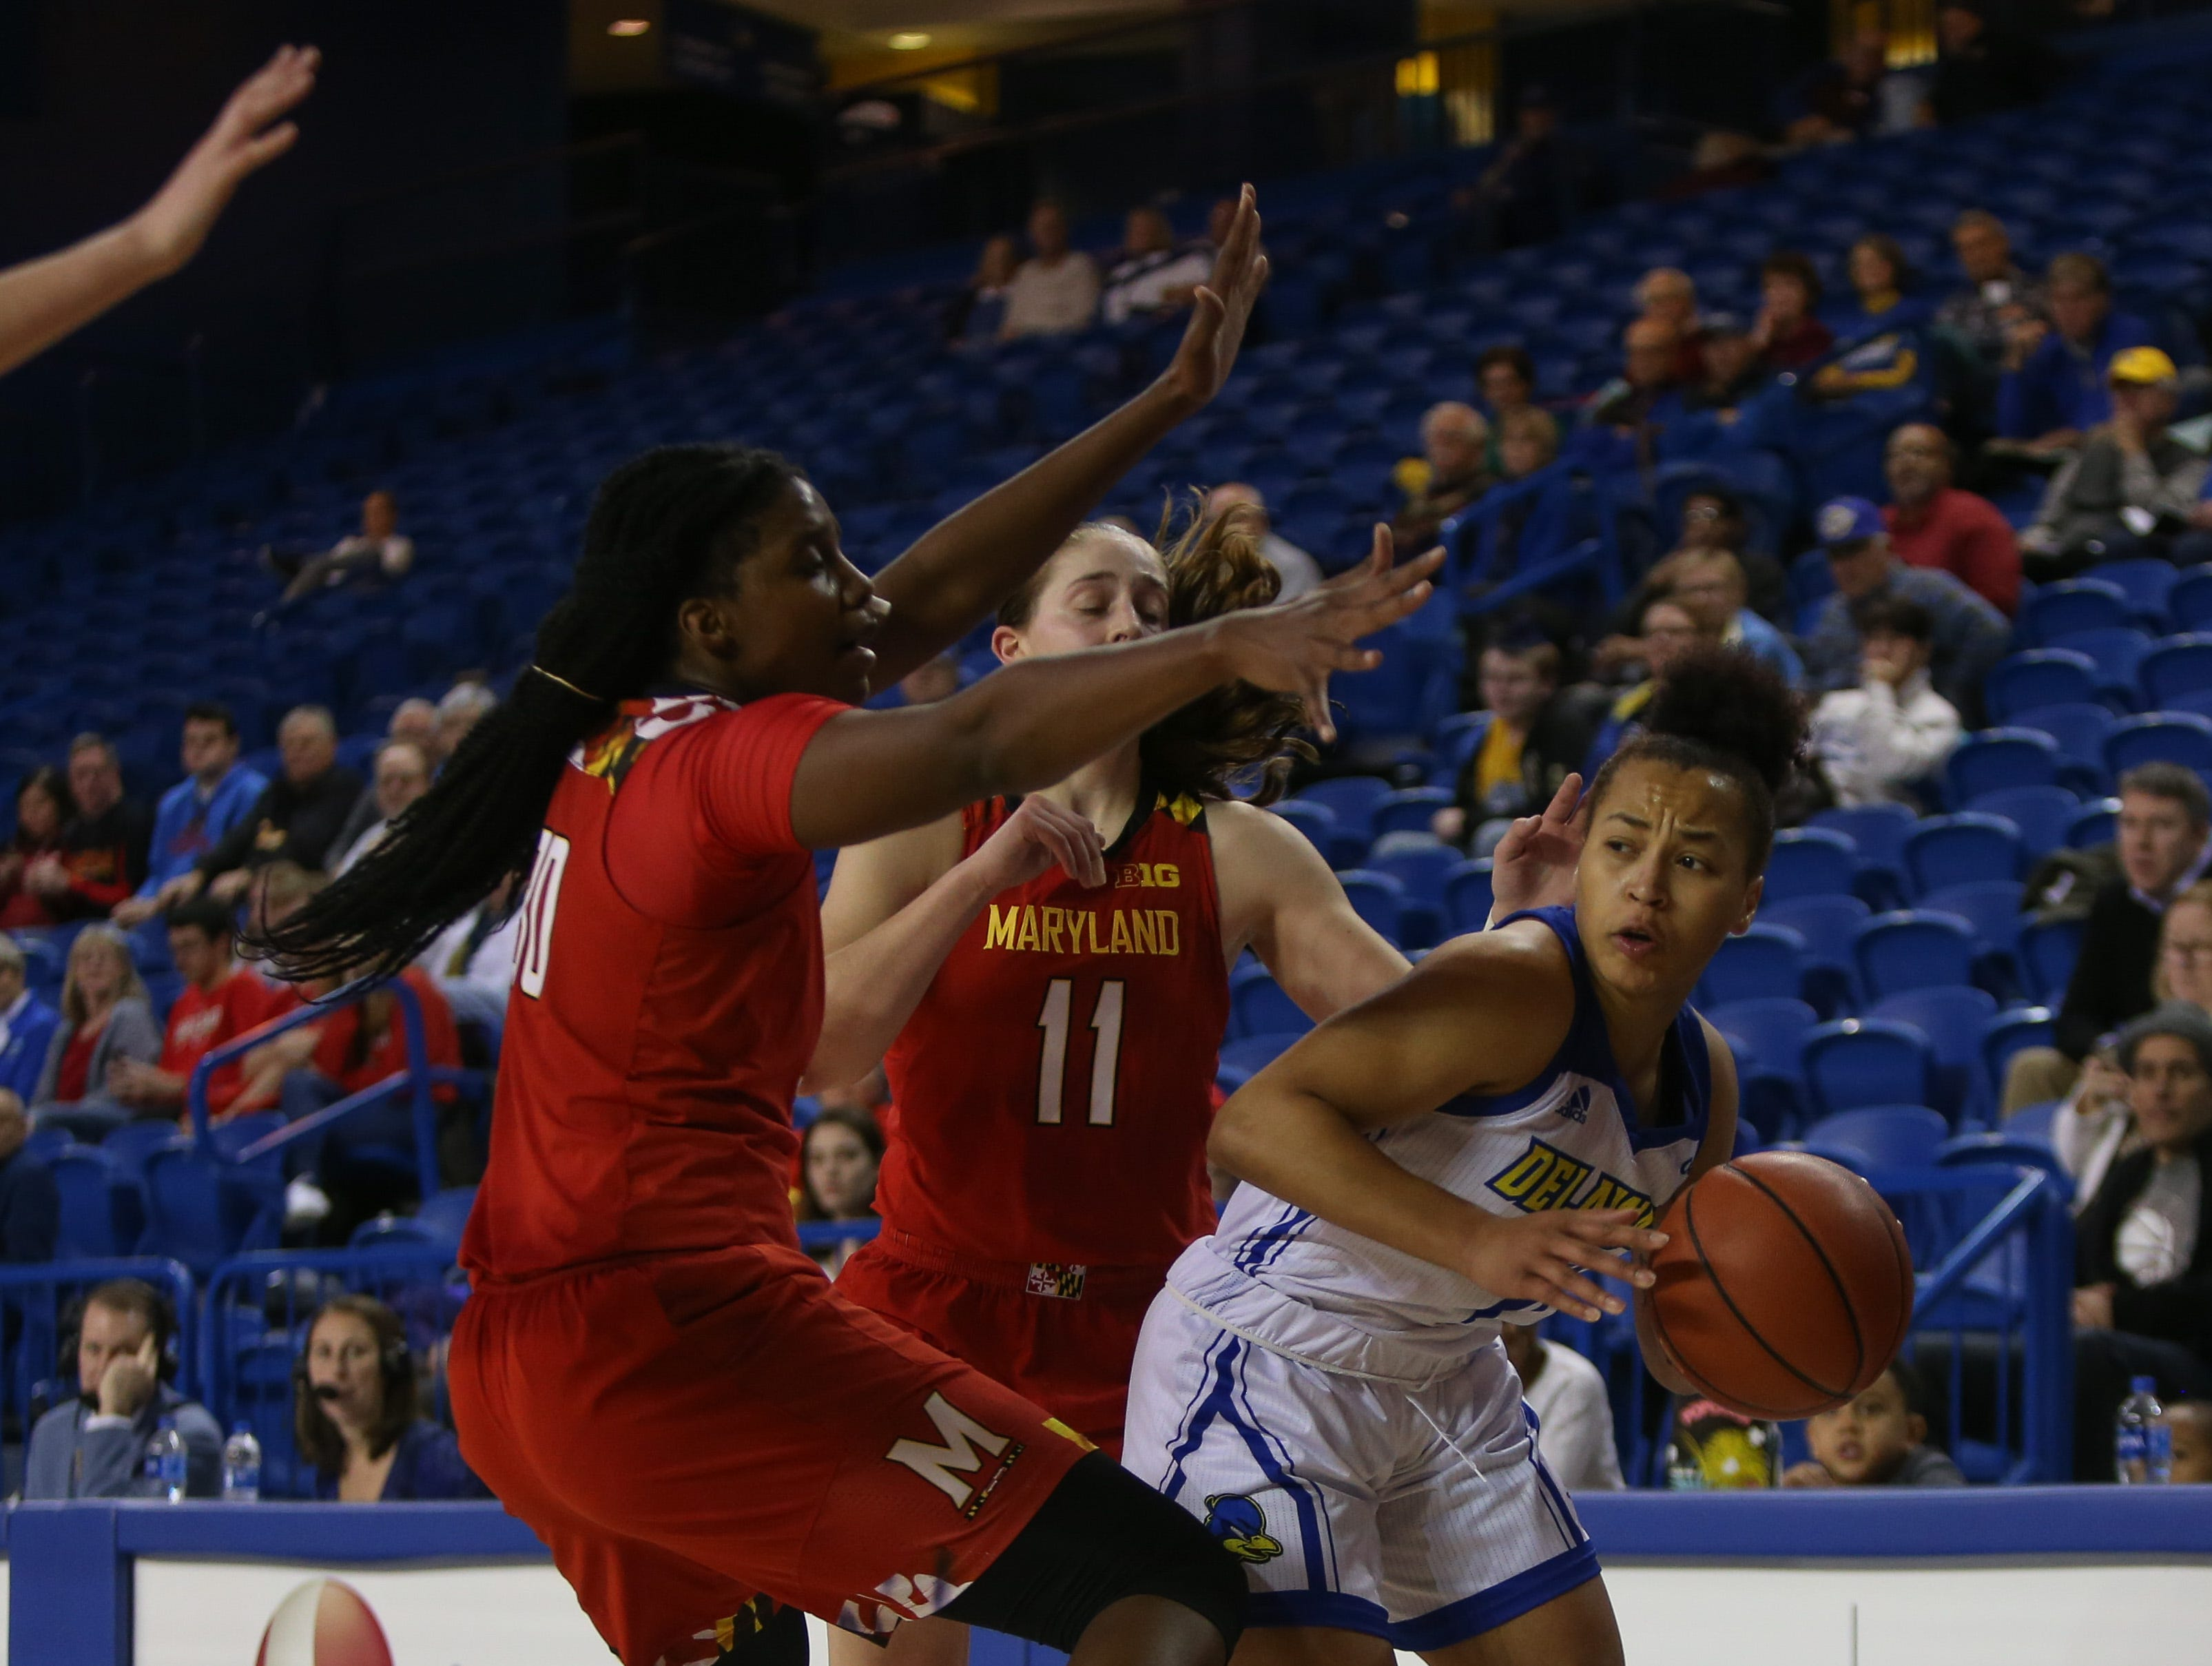 Delaware guard Paris McBride is swarmed by a pair of Maryland defenders. The University of Delaware women's basketball team falls to No. 5 University of Maryland 77-53 at the Bob Carpenter Center Thursday.